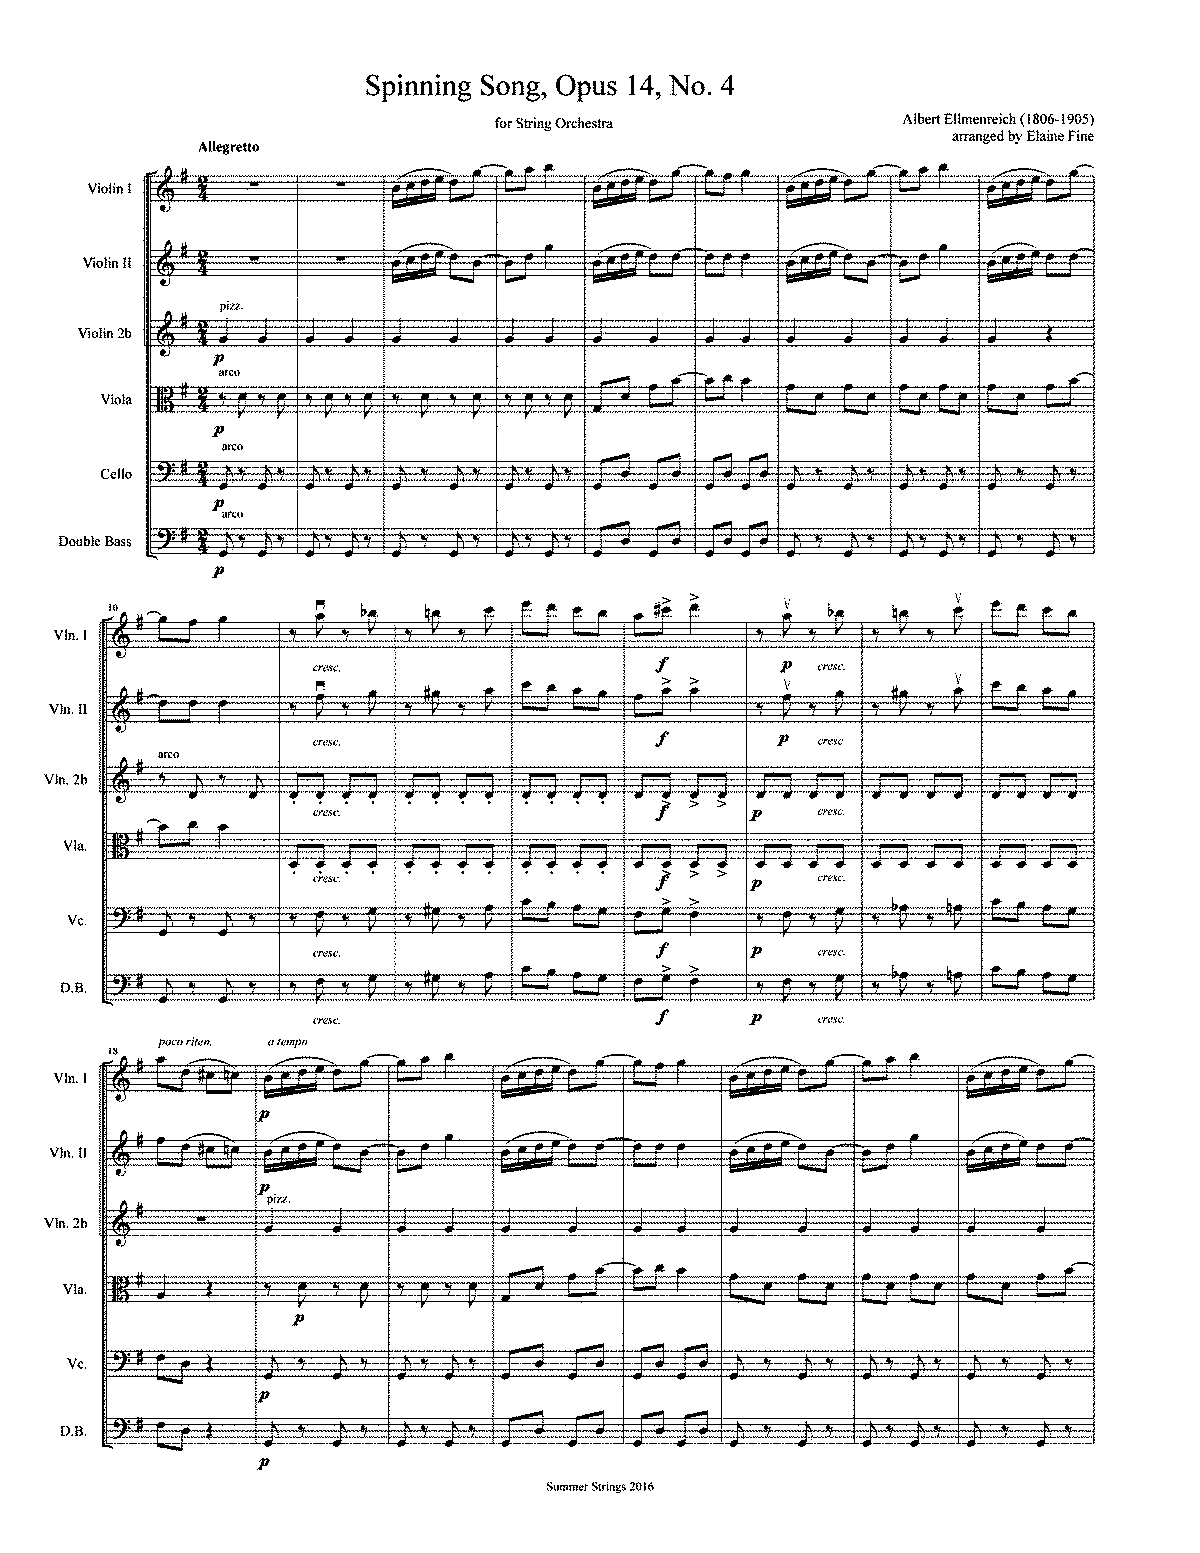 PMLP192896-Spinning Song for String Orchestra Score and Parts.pdf